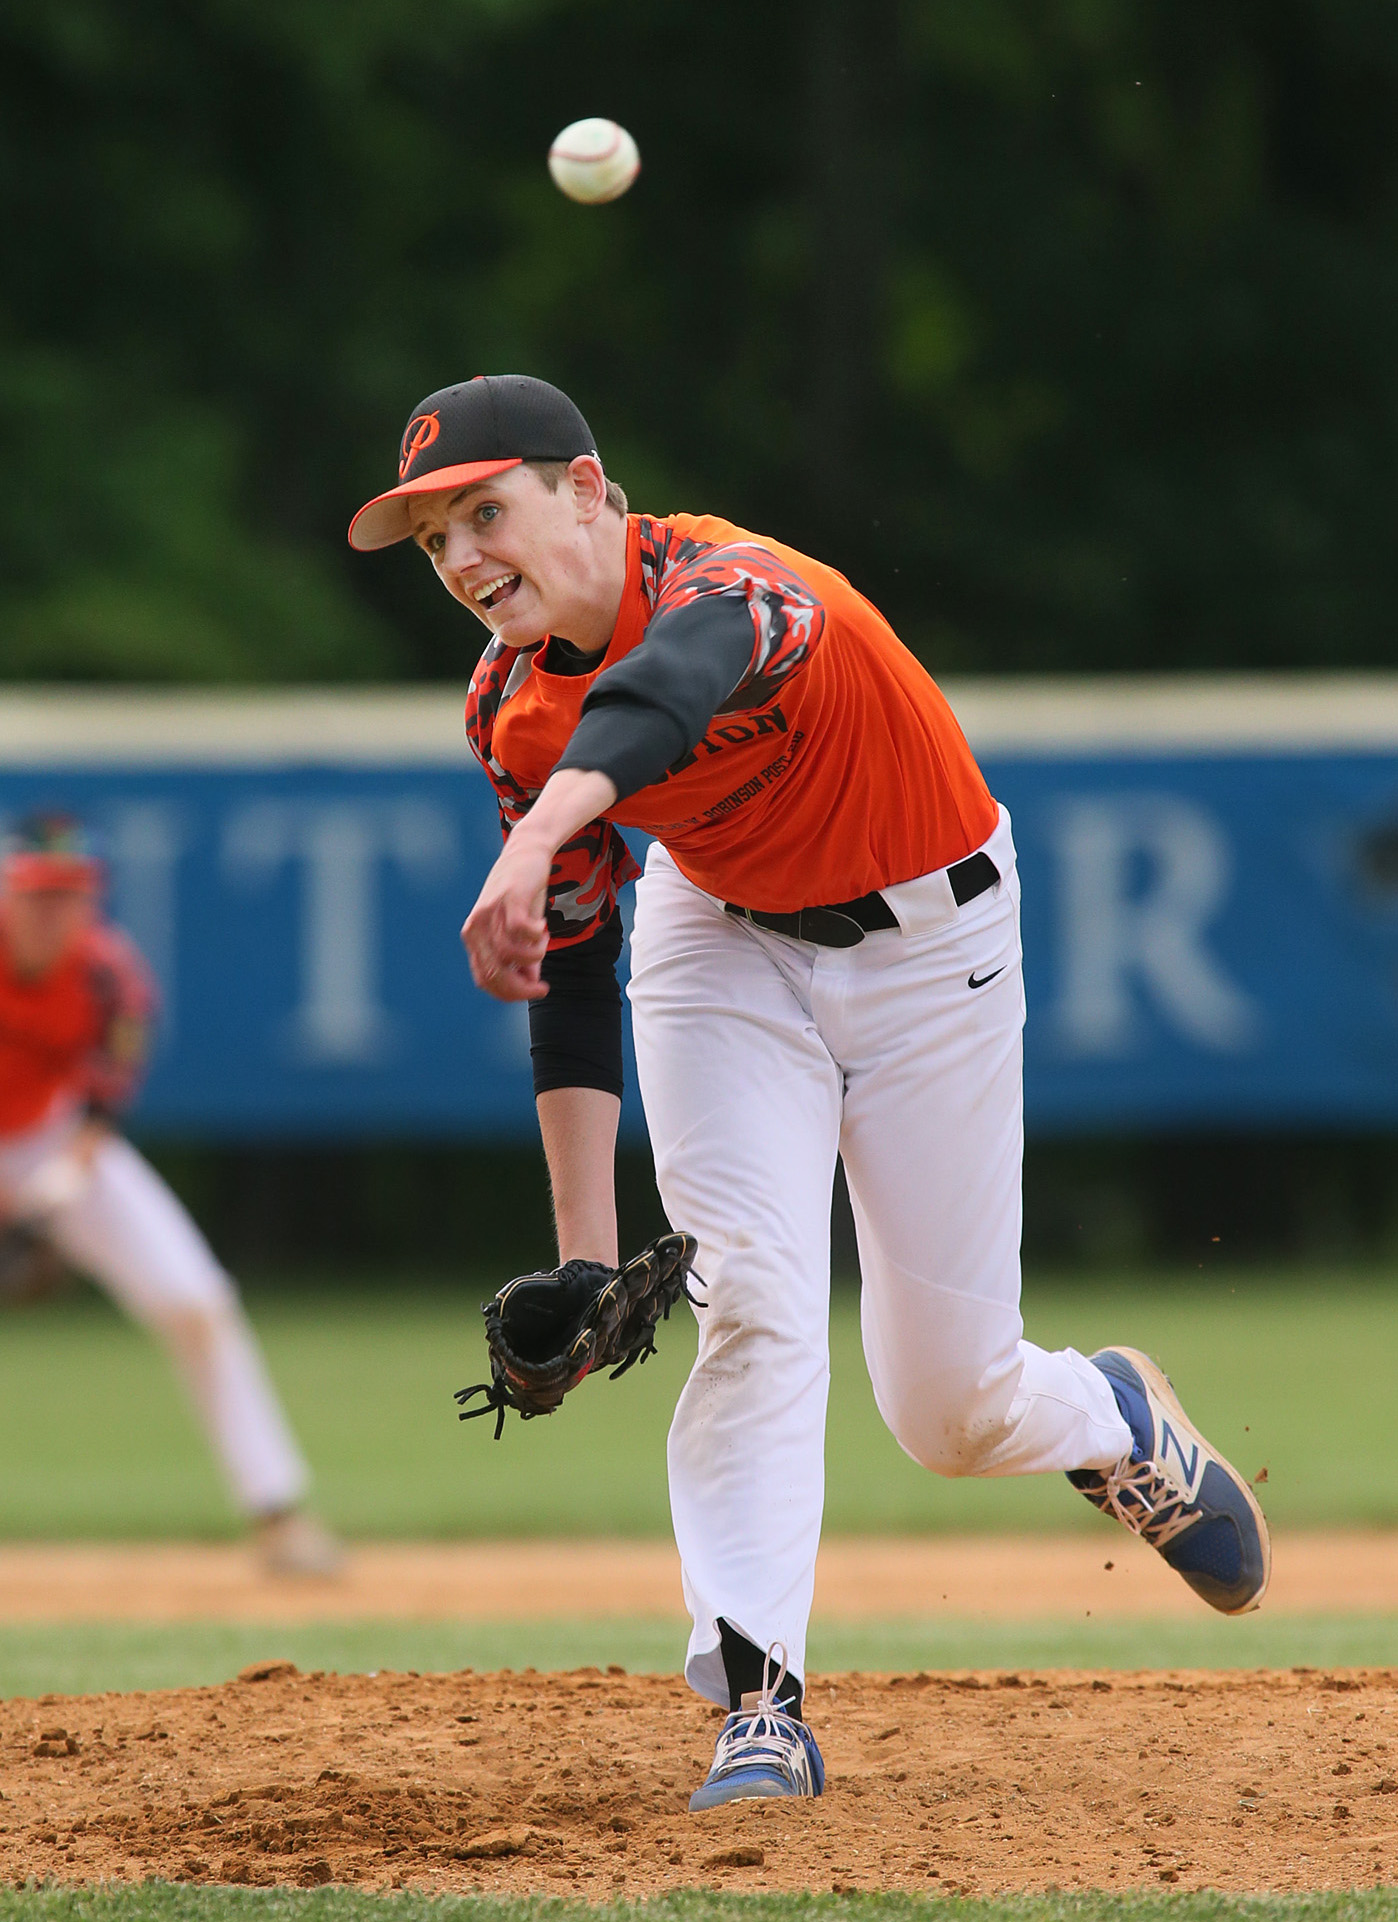 PHS Standout Pitcher Durbin Shows His Stuff As Post 218